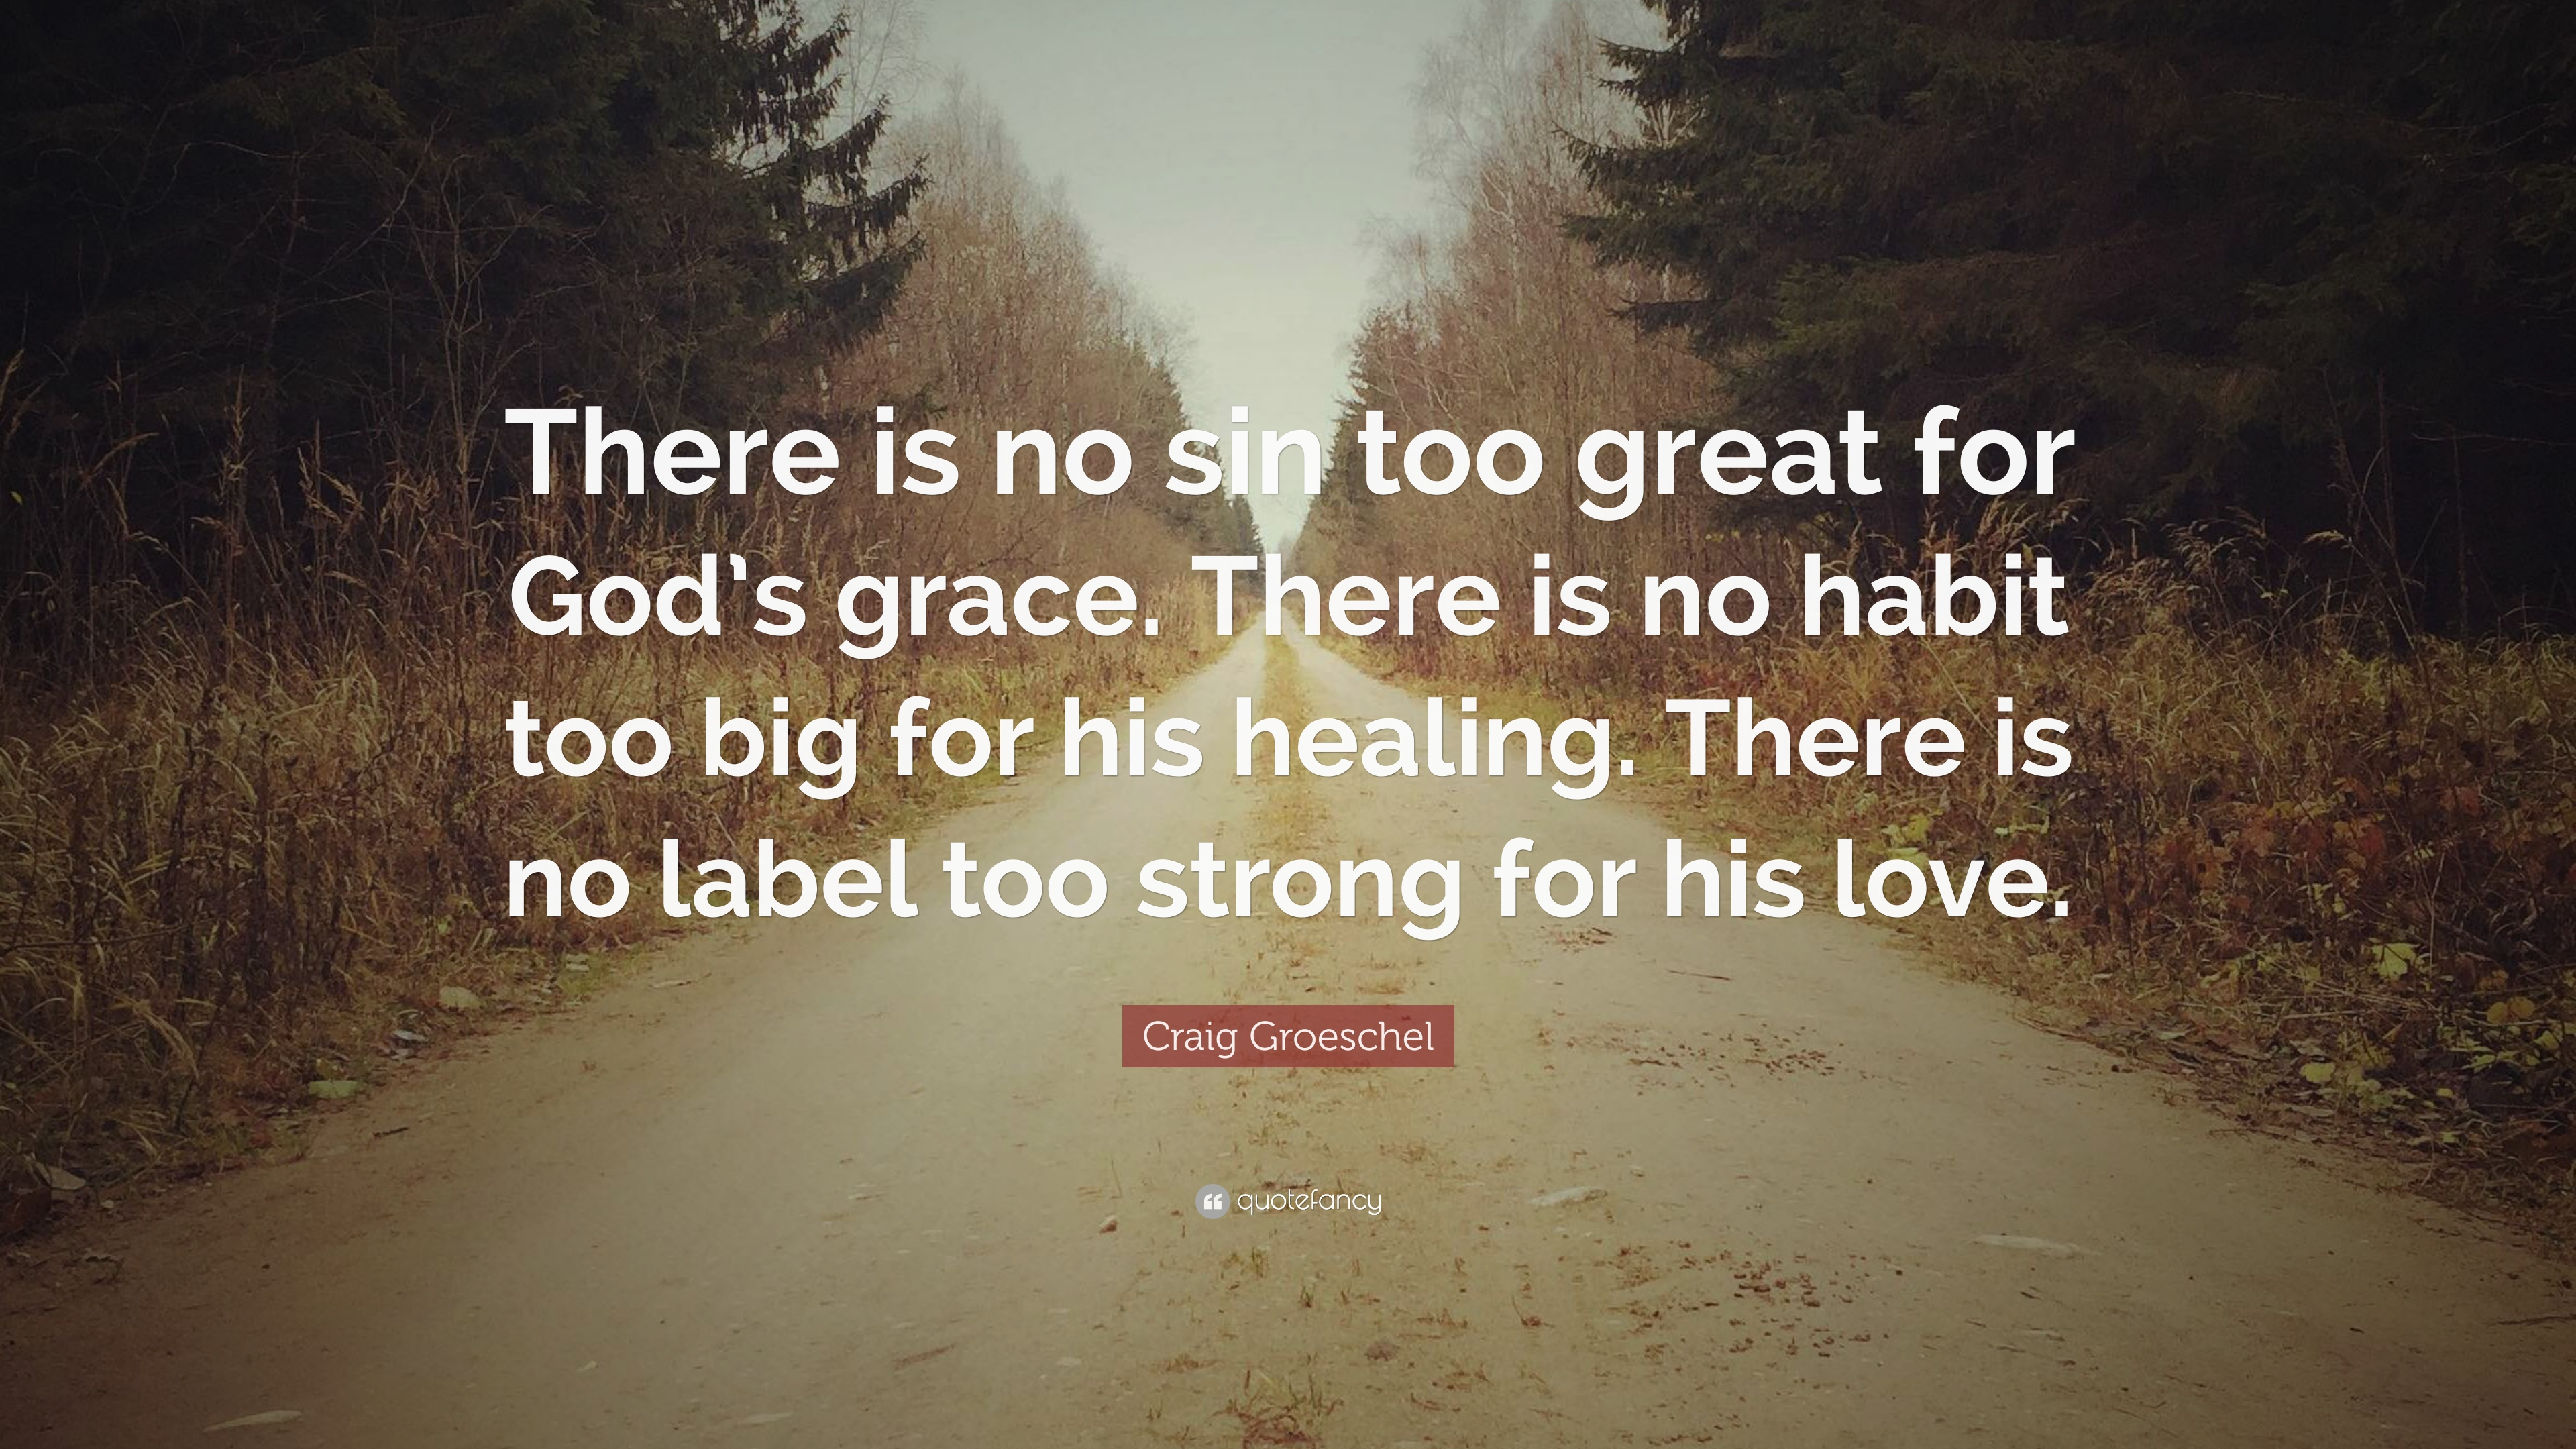 """Quotes On God's Grace Craig Groeschel Quote """"There Is No Sin Too Great For God's Grace ."""